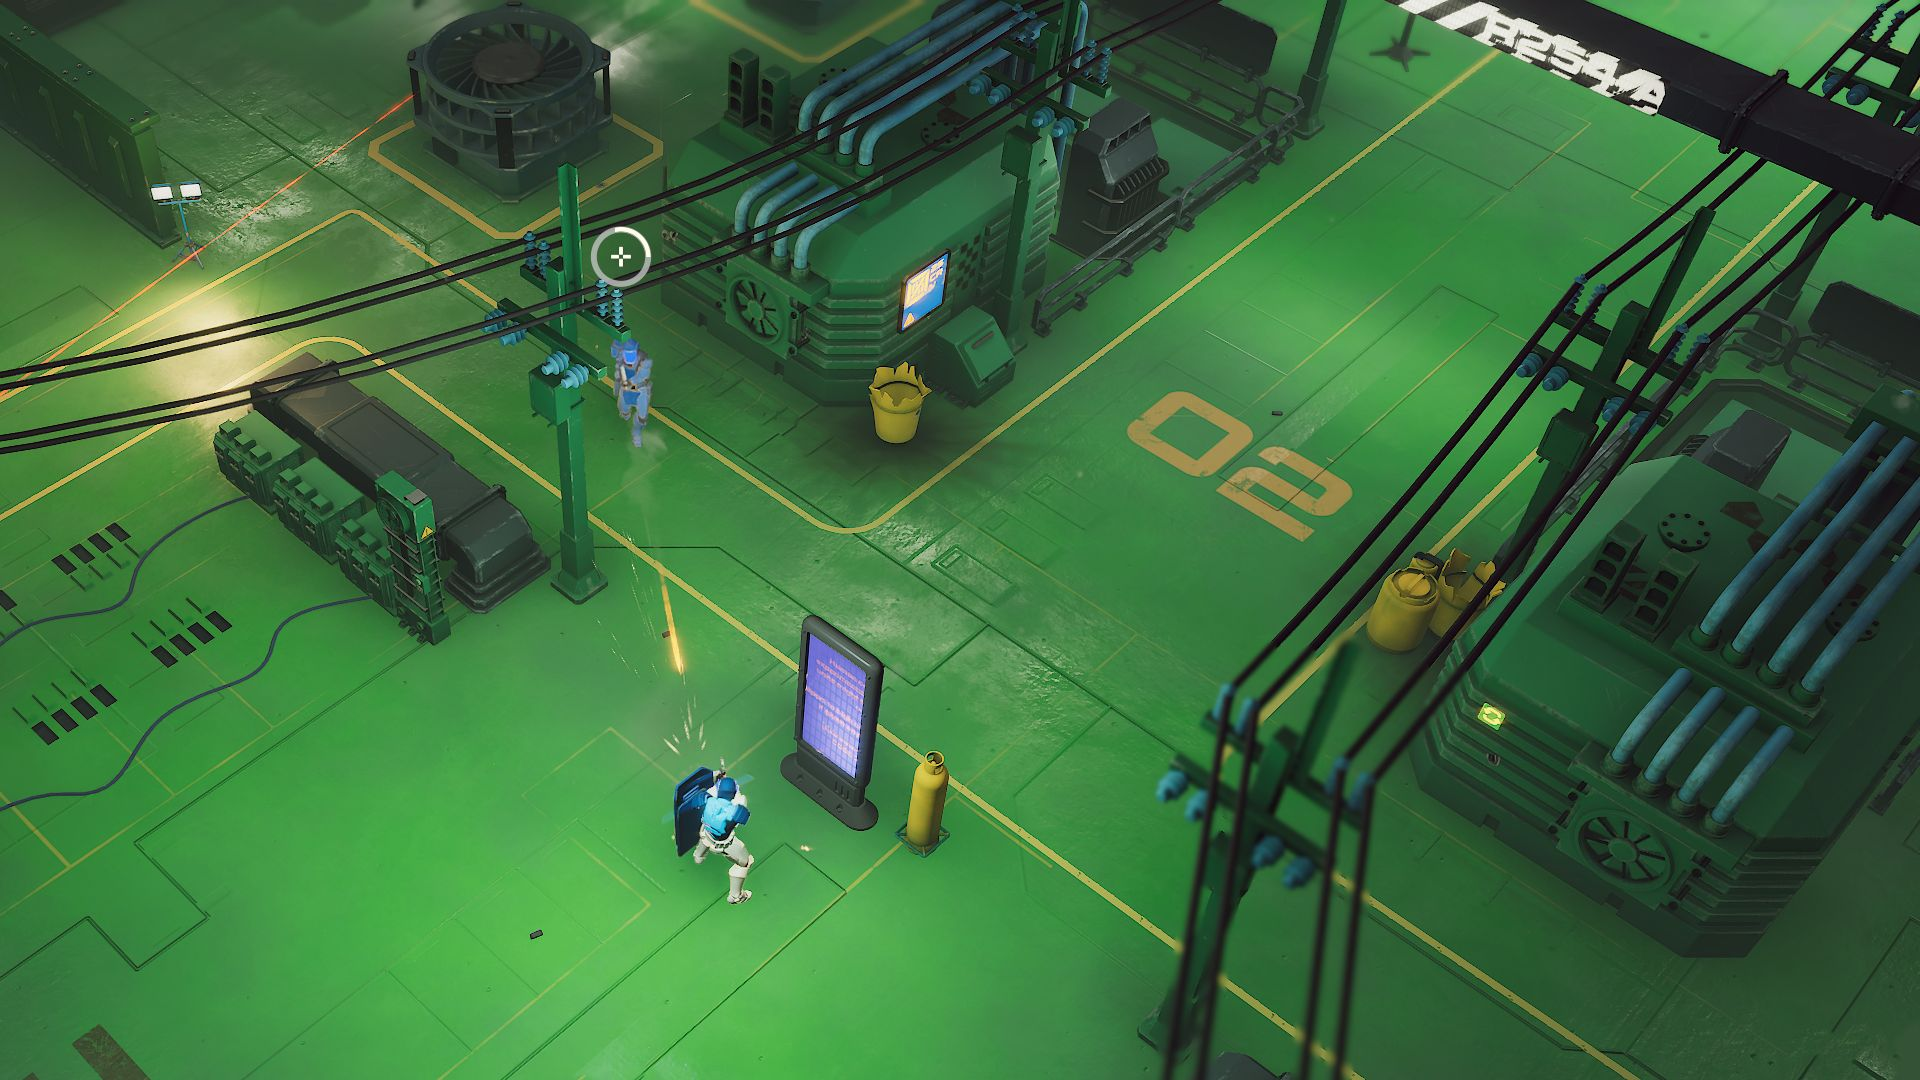 Tactical shooter Synthetik 2 is coming to Early Access